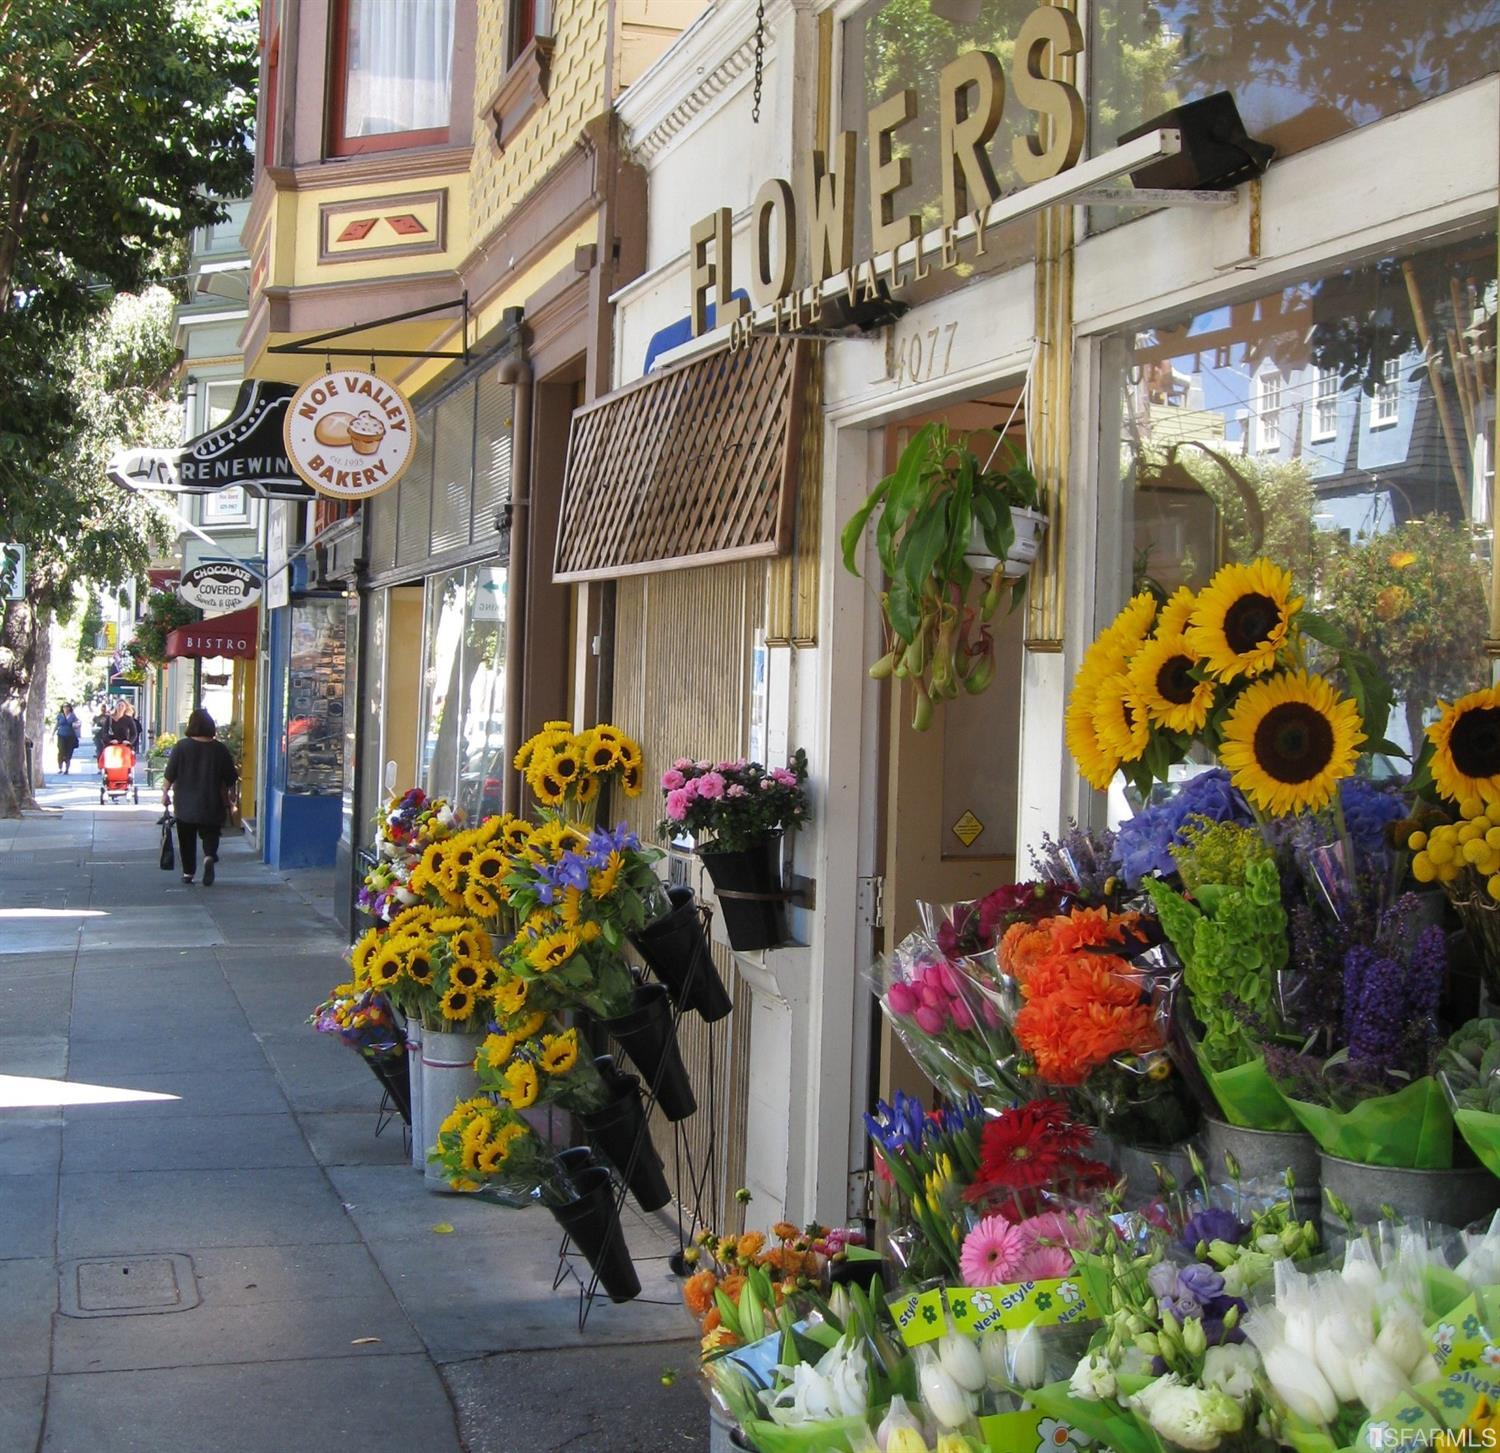 Wander down to 24th Street with wonderful neighborhood stores, great bakeries, restaurants and parks. Fantastic location conveni